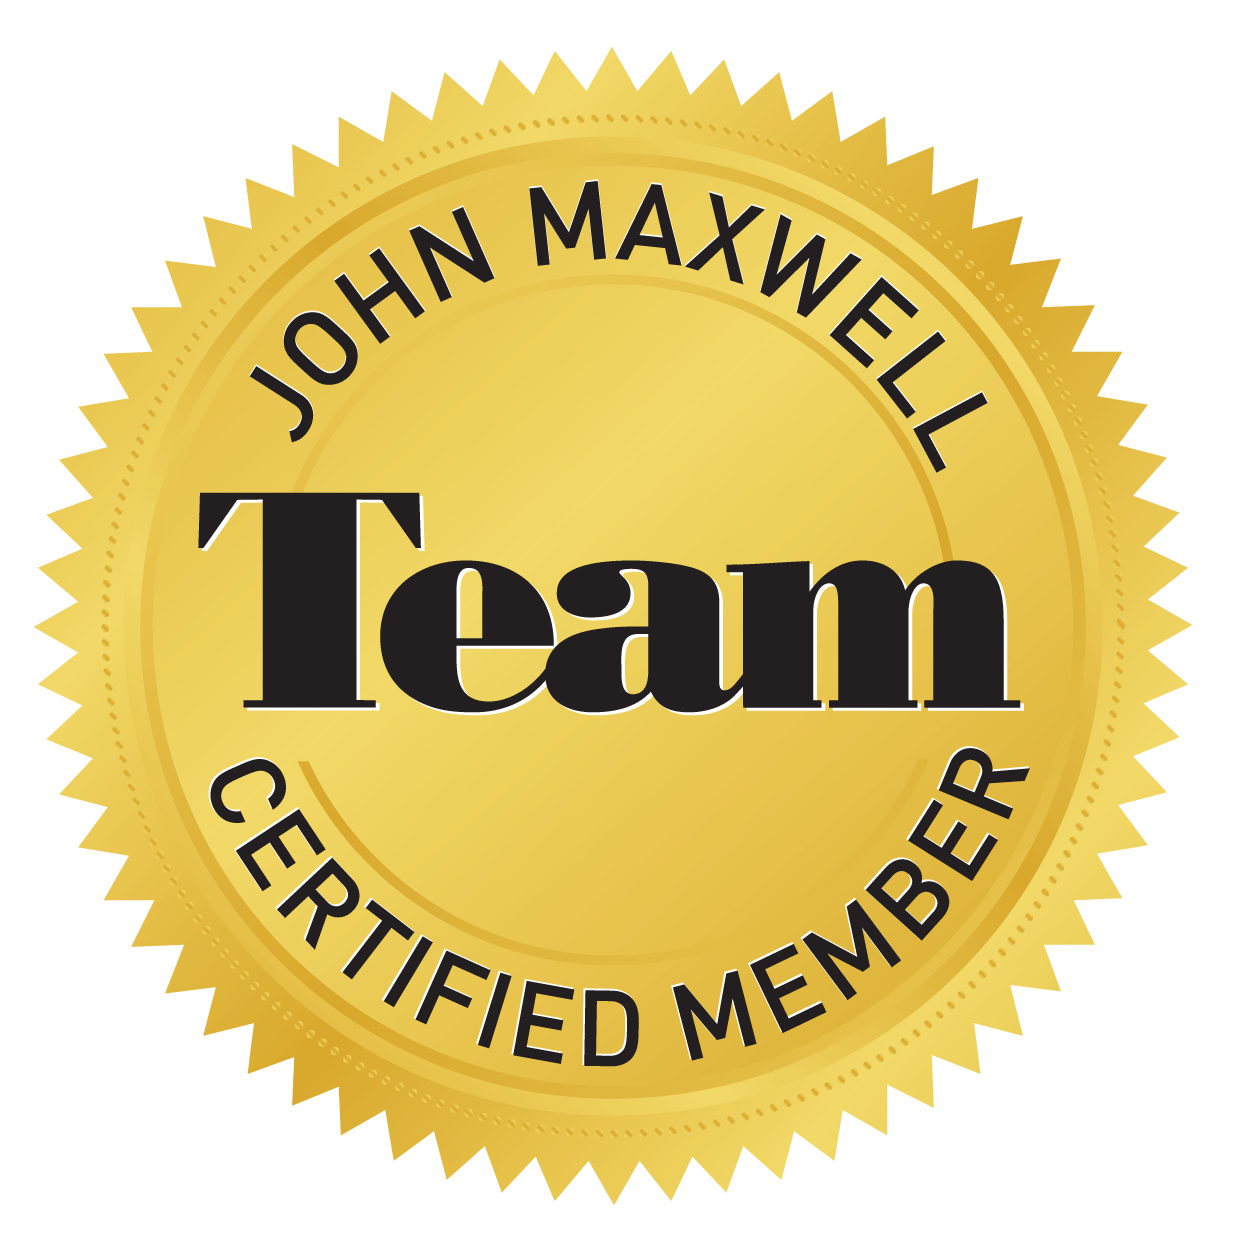 Rob Vieira is a John Maxwell Team Certified Speaker